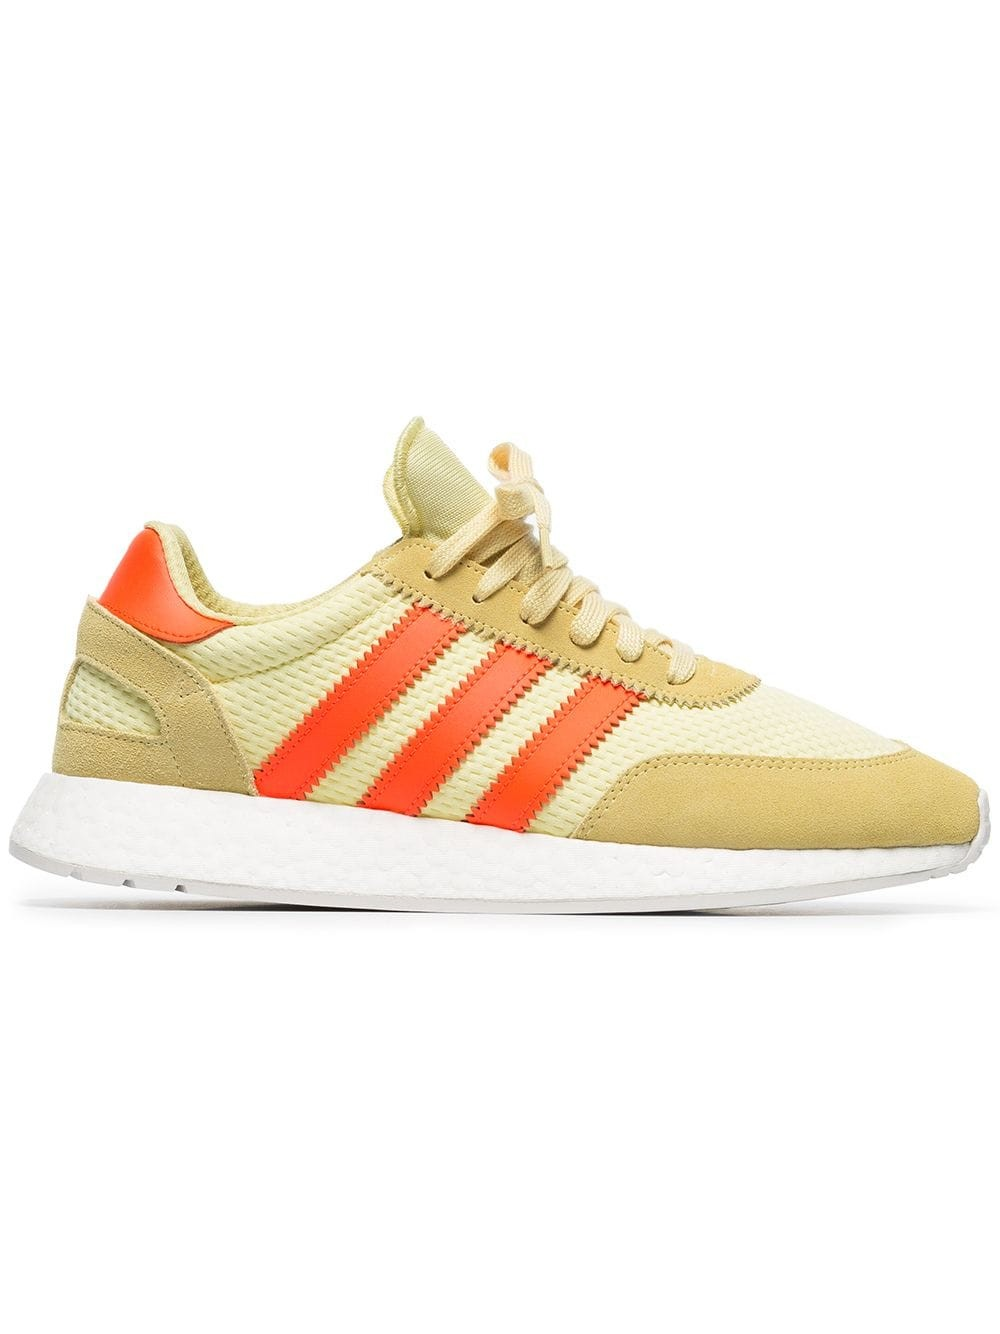 Adidas Originals I-5923 Leather Sneakers Amarillas D96604